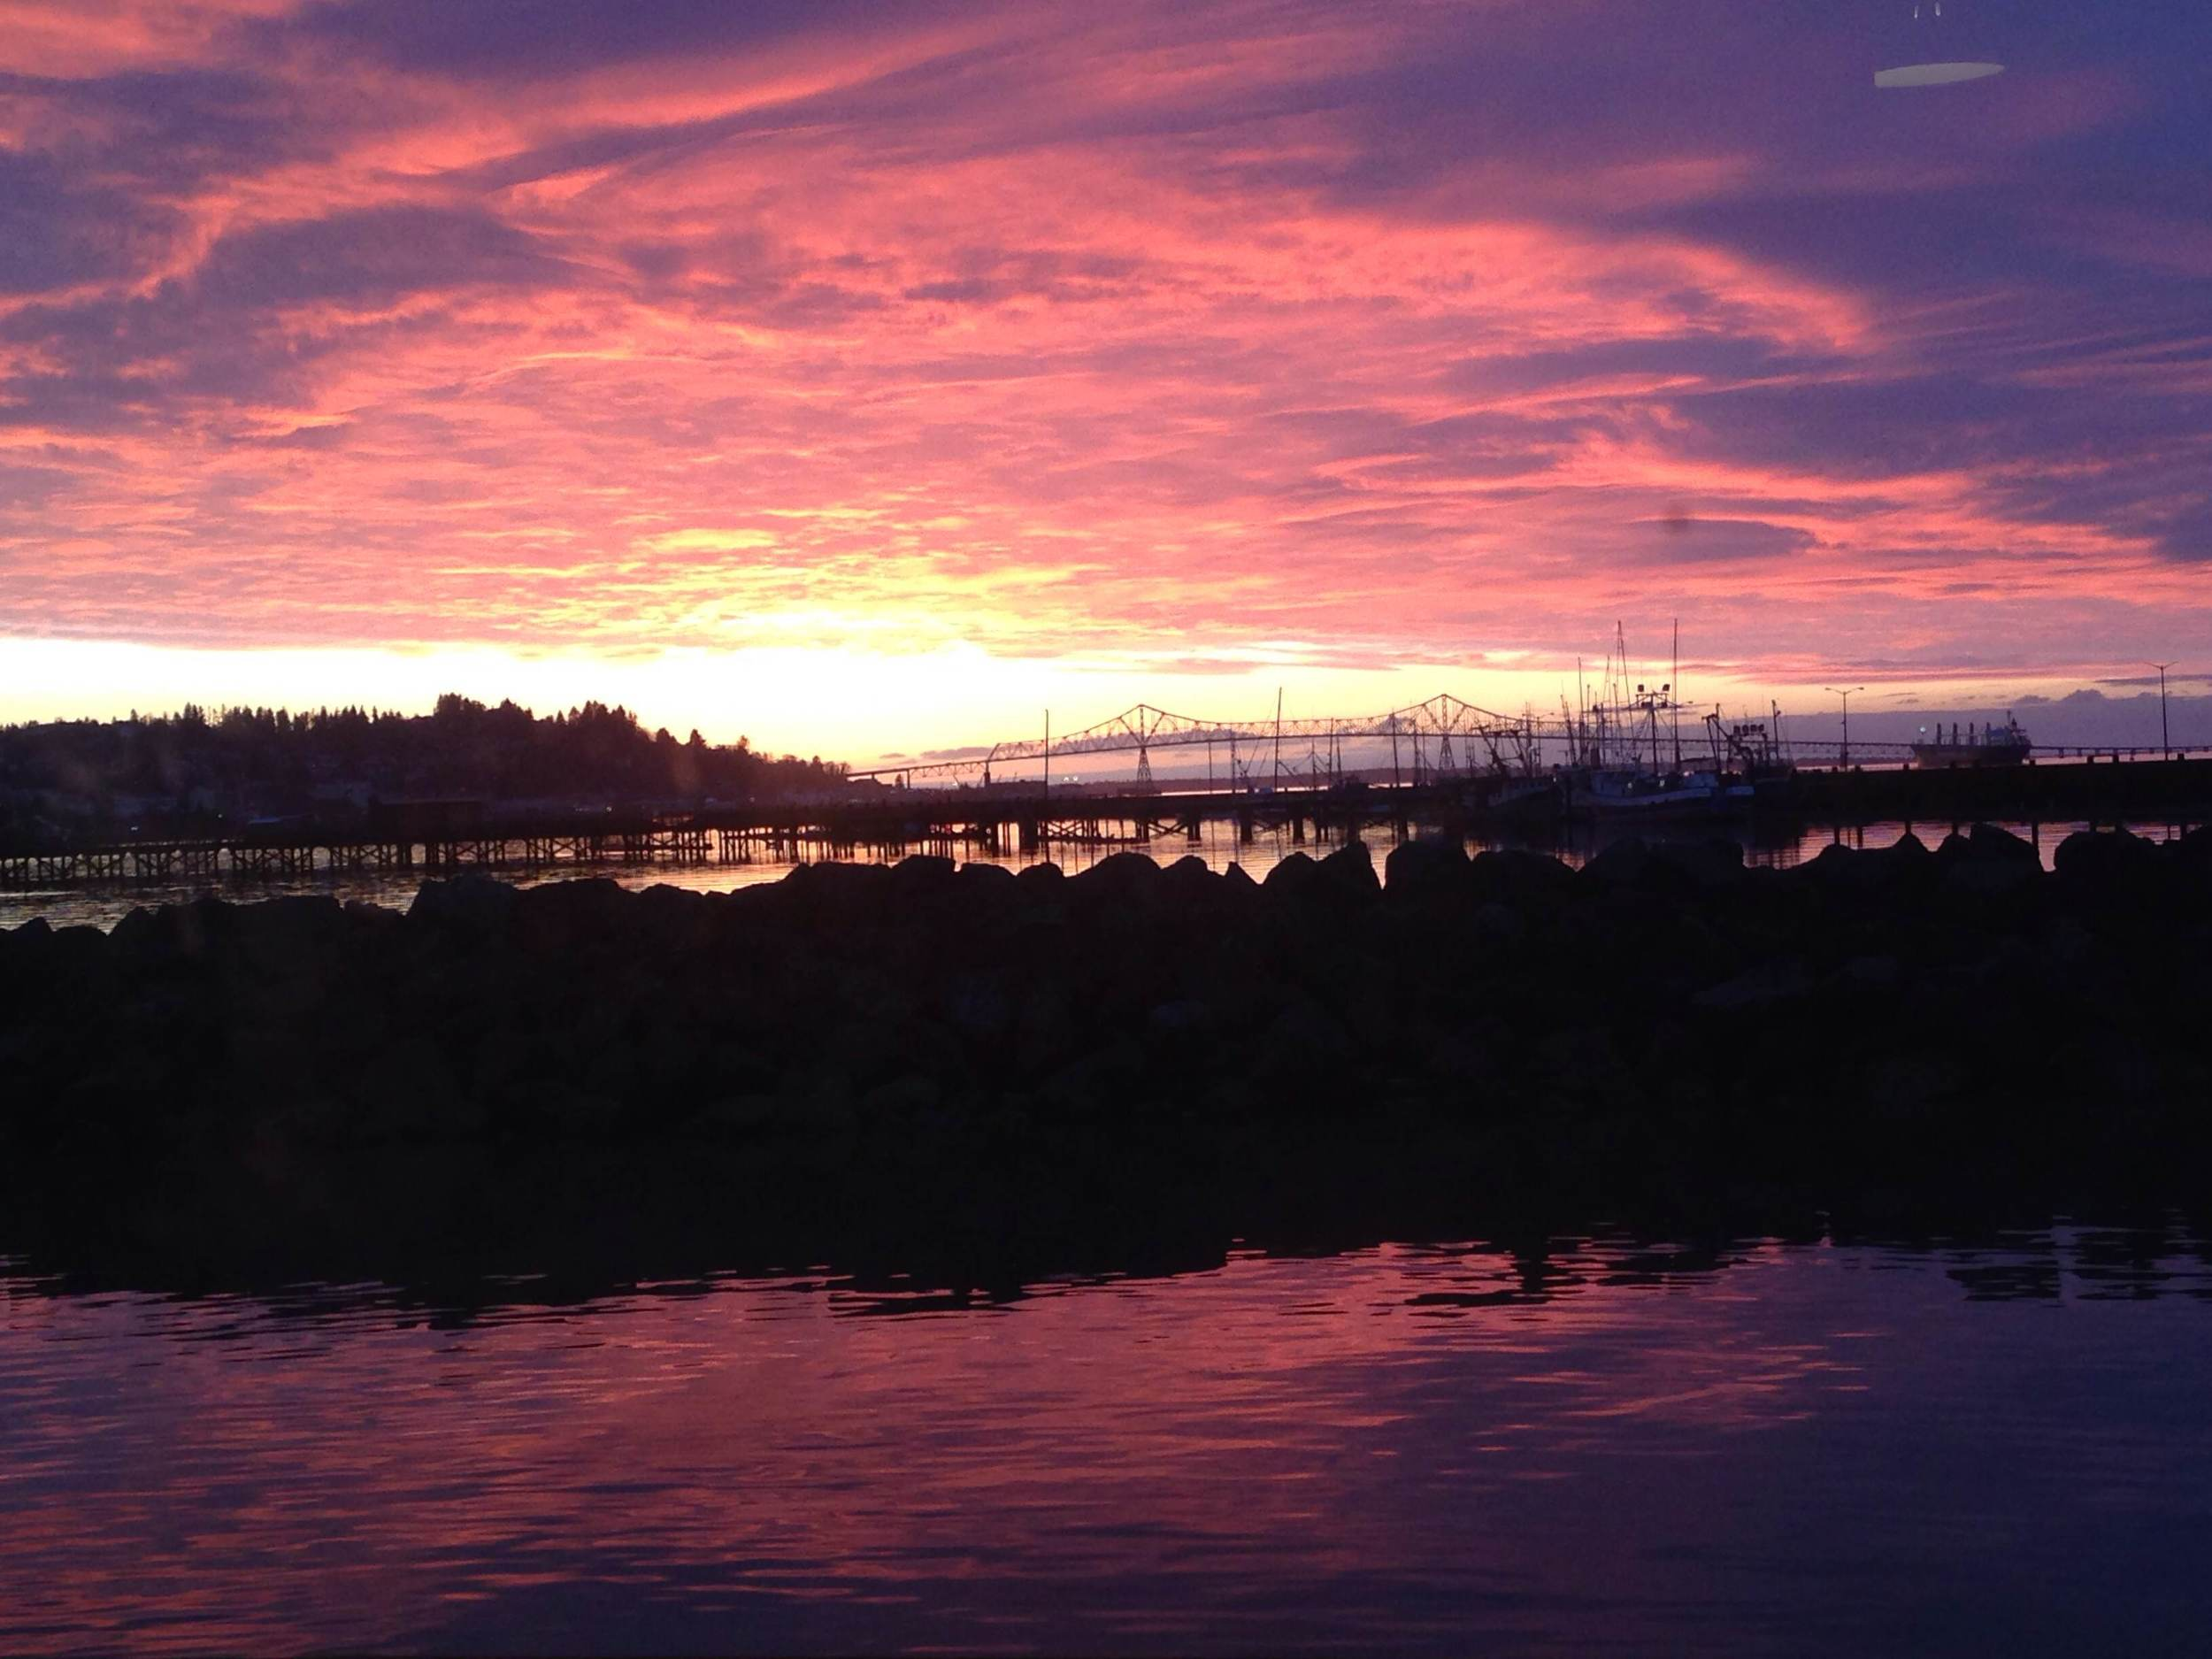 The view from our table at Rogue brewery in Astoria. Not bad, Oregon, not bad.